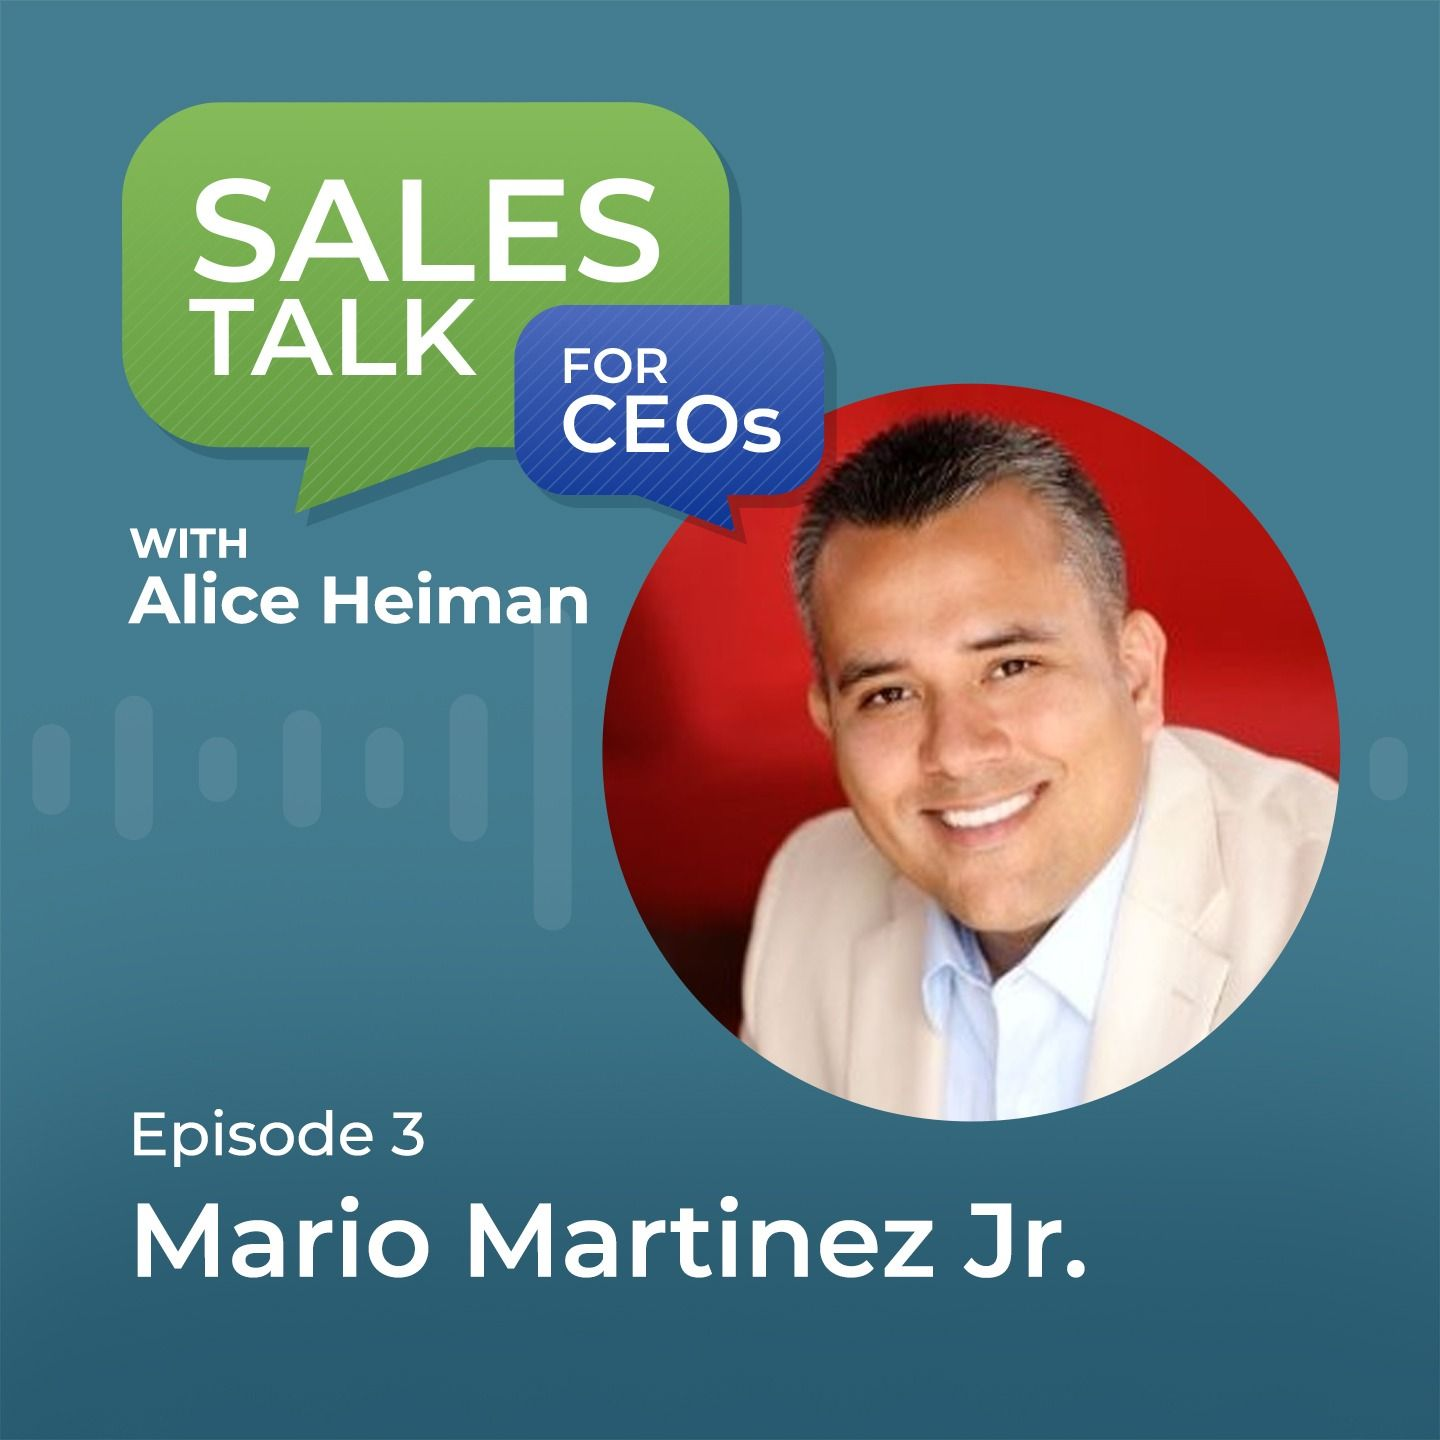 Finding Success by Building a Remote Sales Team With Mario Martinez, Jr.